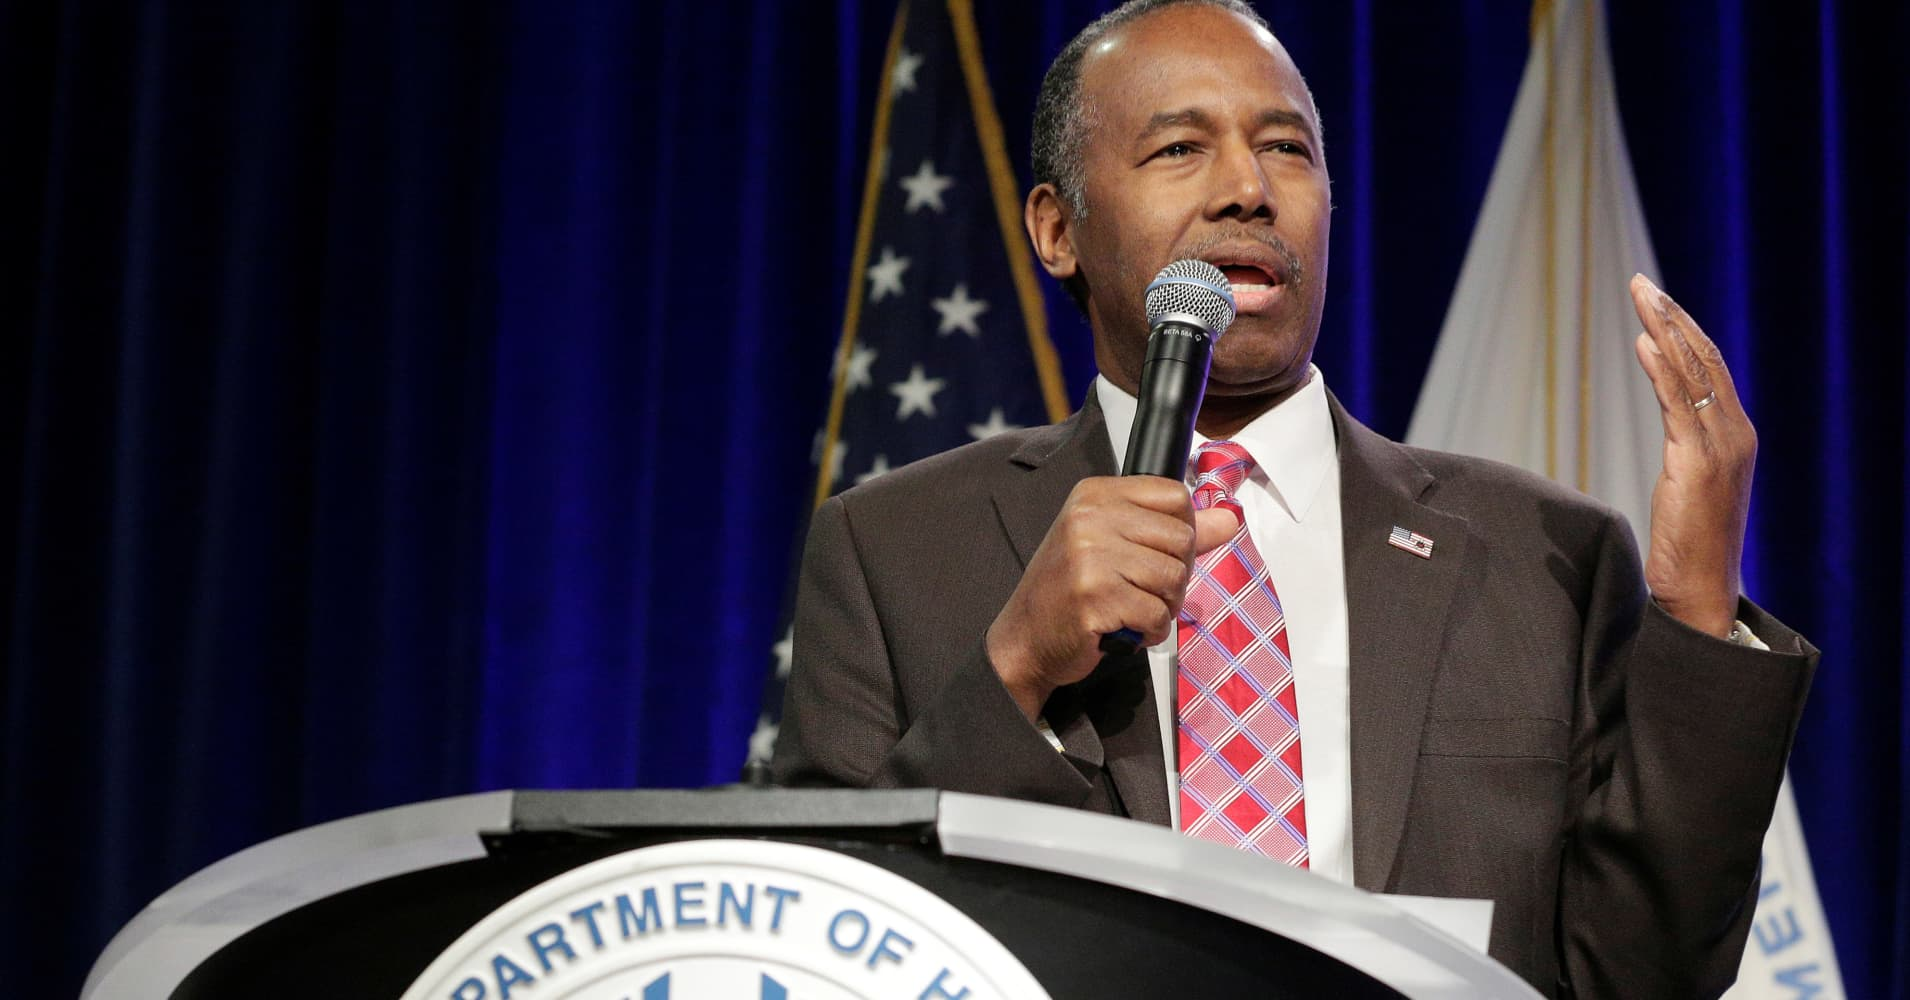 Trump HUD Secretary Ben Carson claims Kavanaugh allegations are part of a centuries old socialist plot